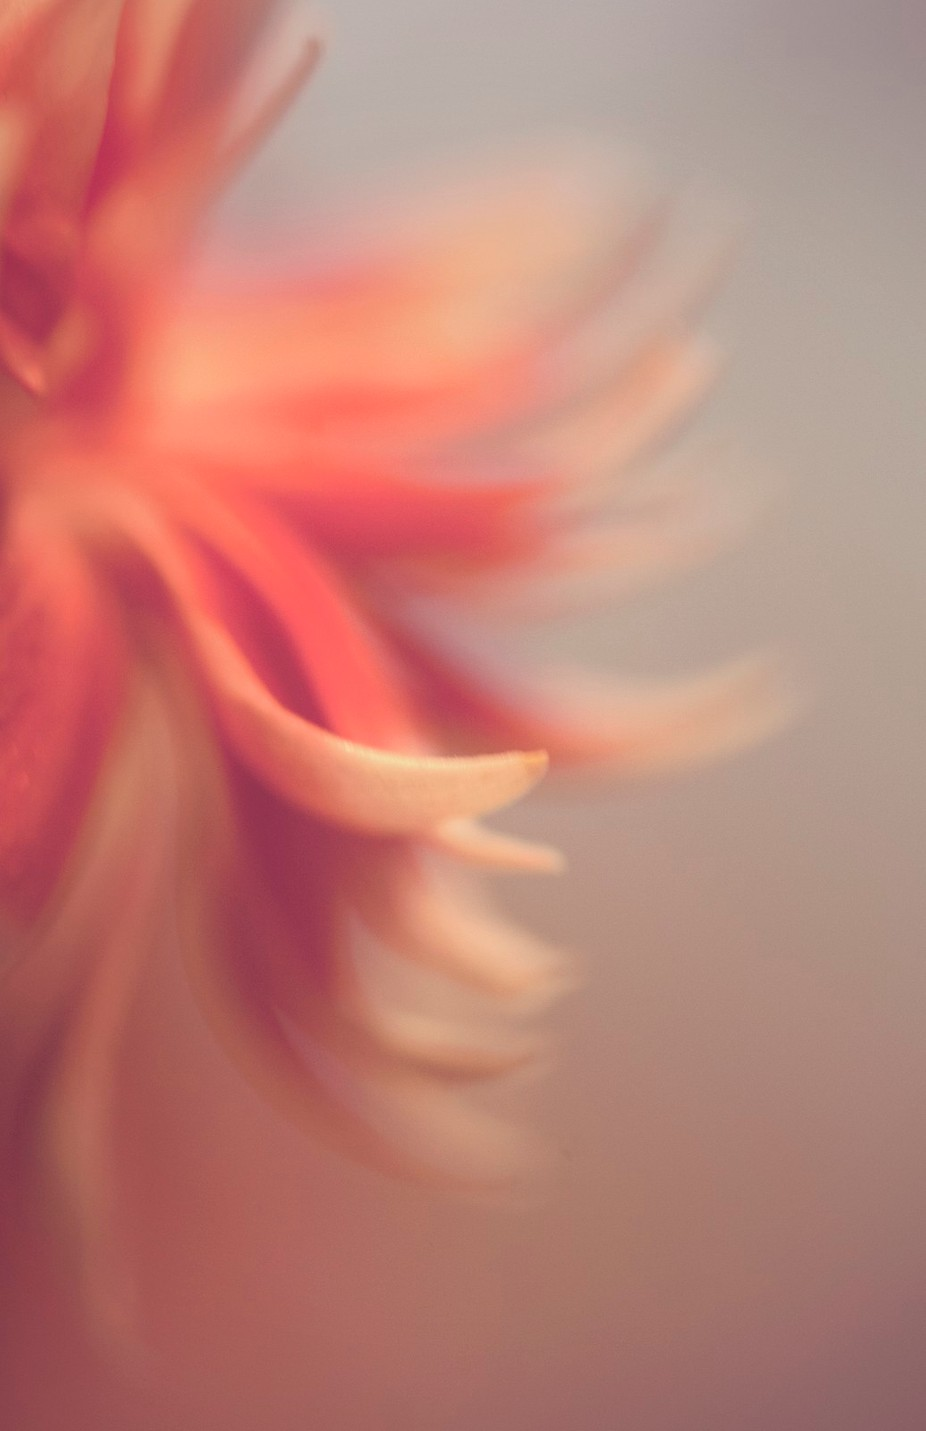 Wispy Carnation by patticarol - Pastel Colors Photo Contest